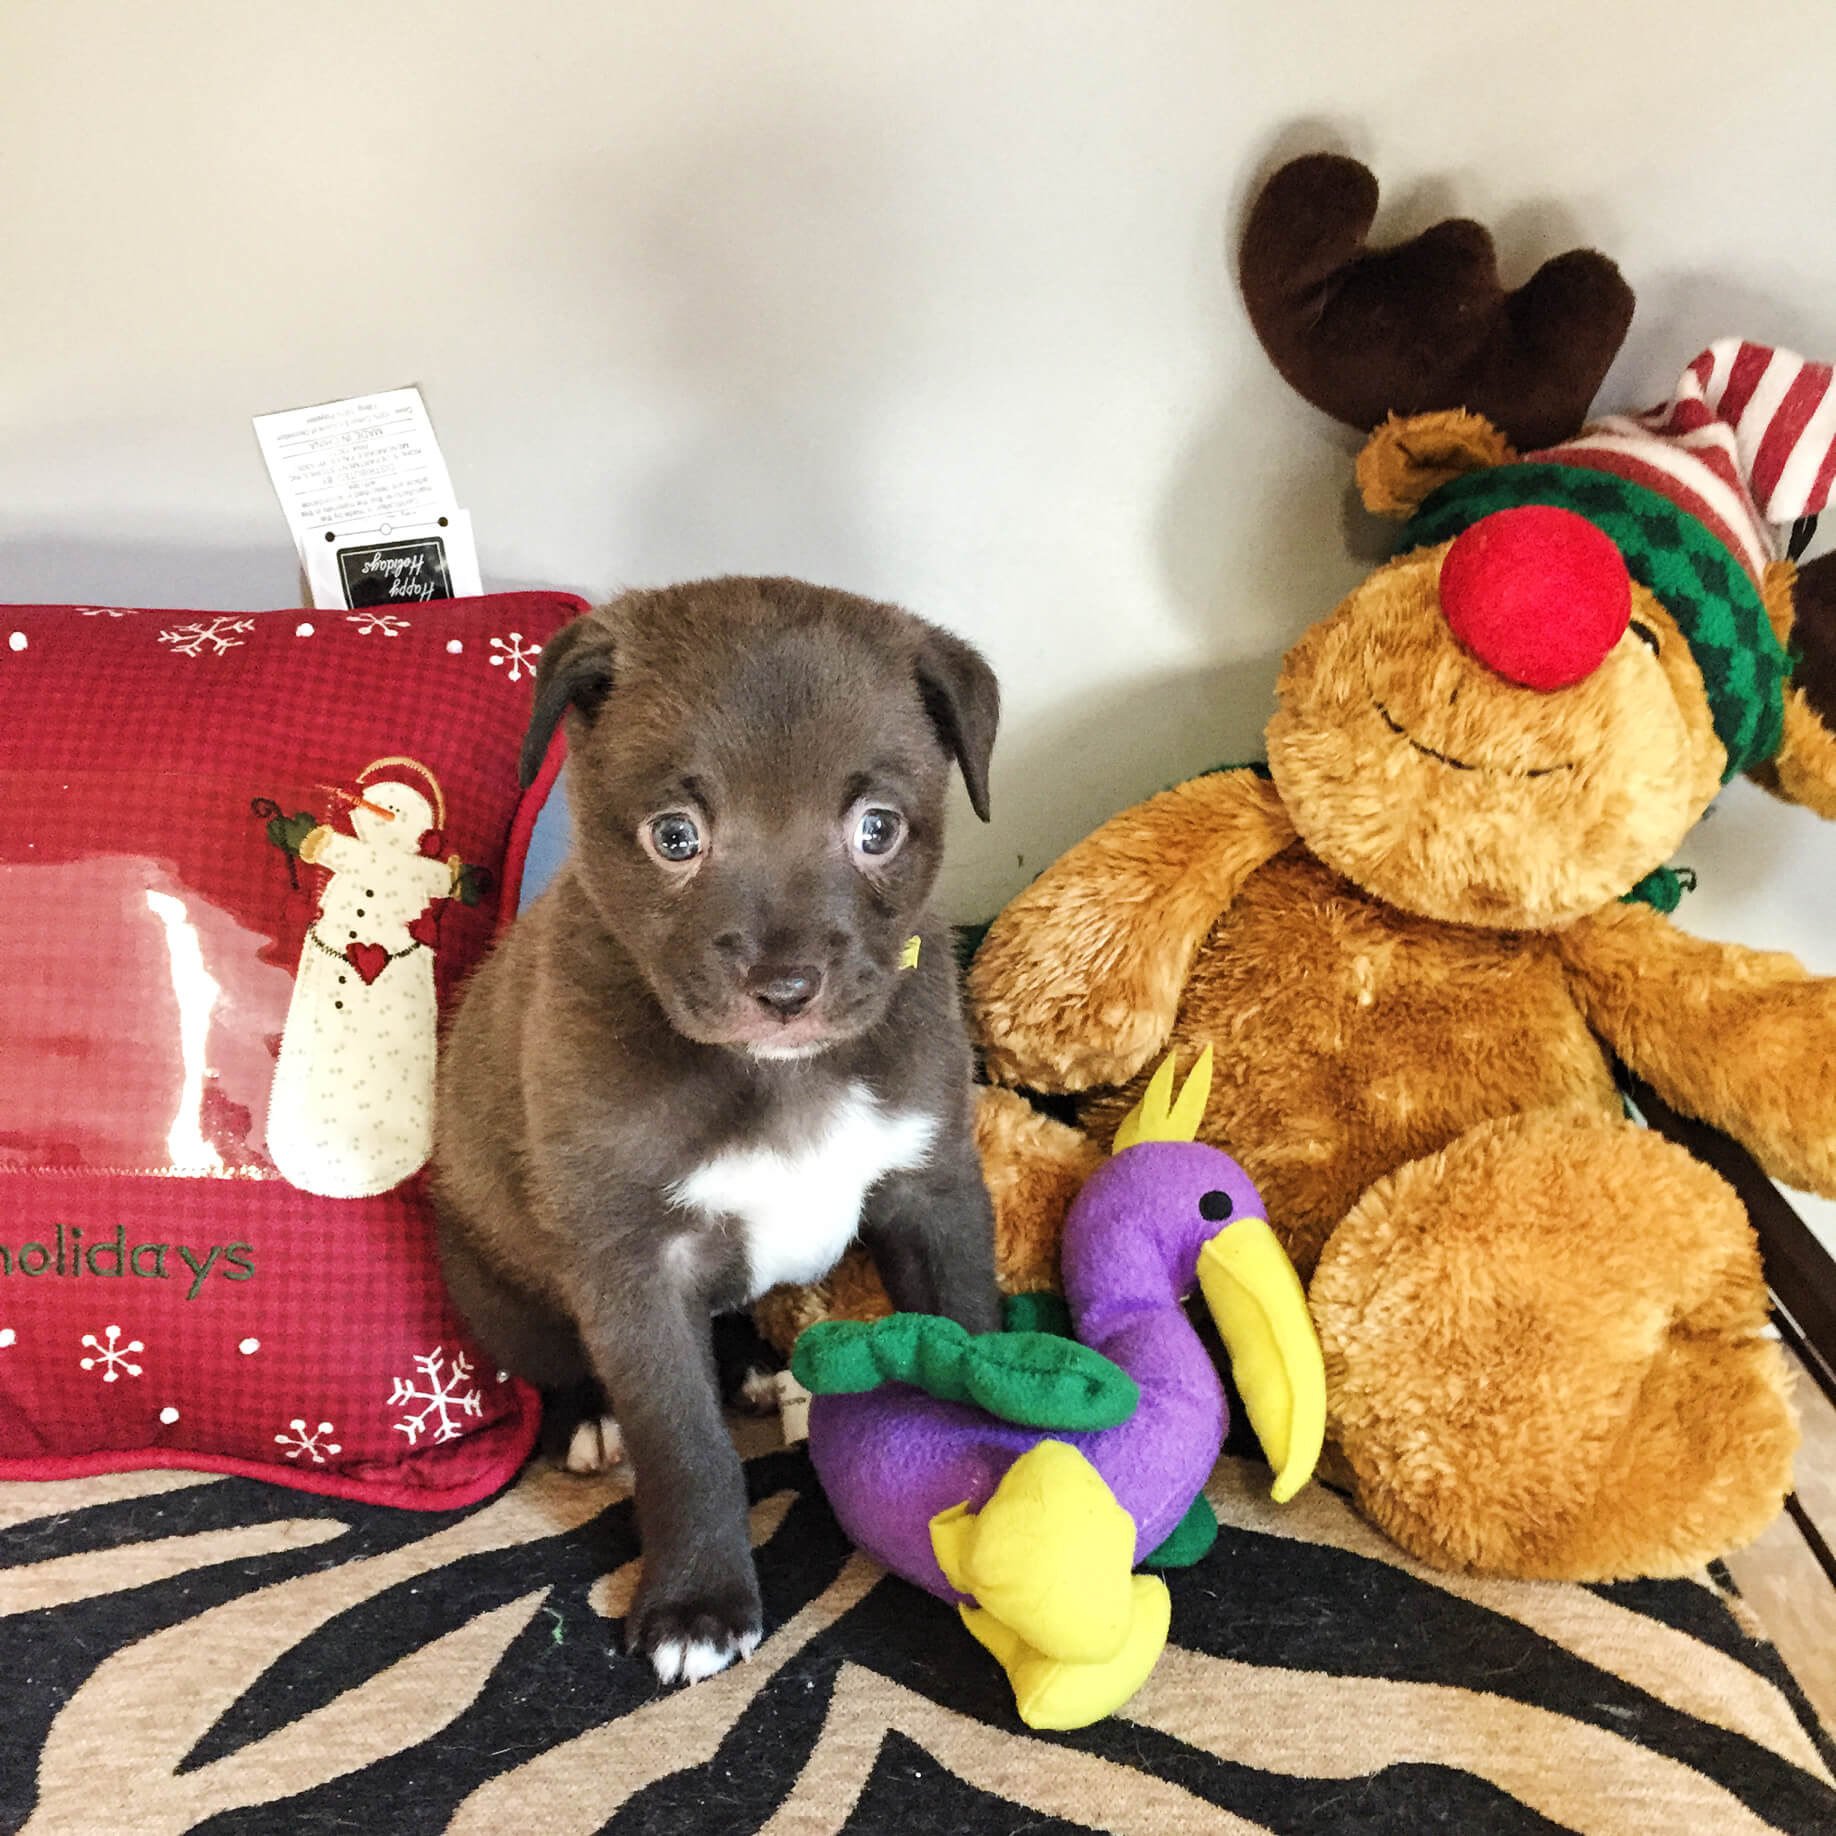 Pet of the Week {December 14th, 2015}